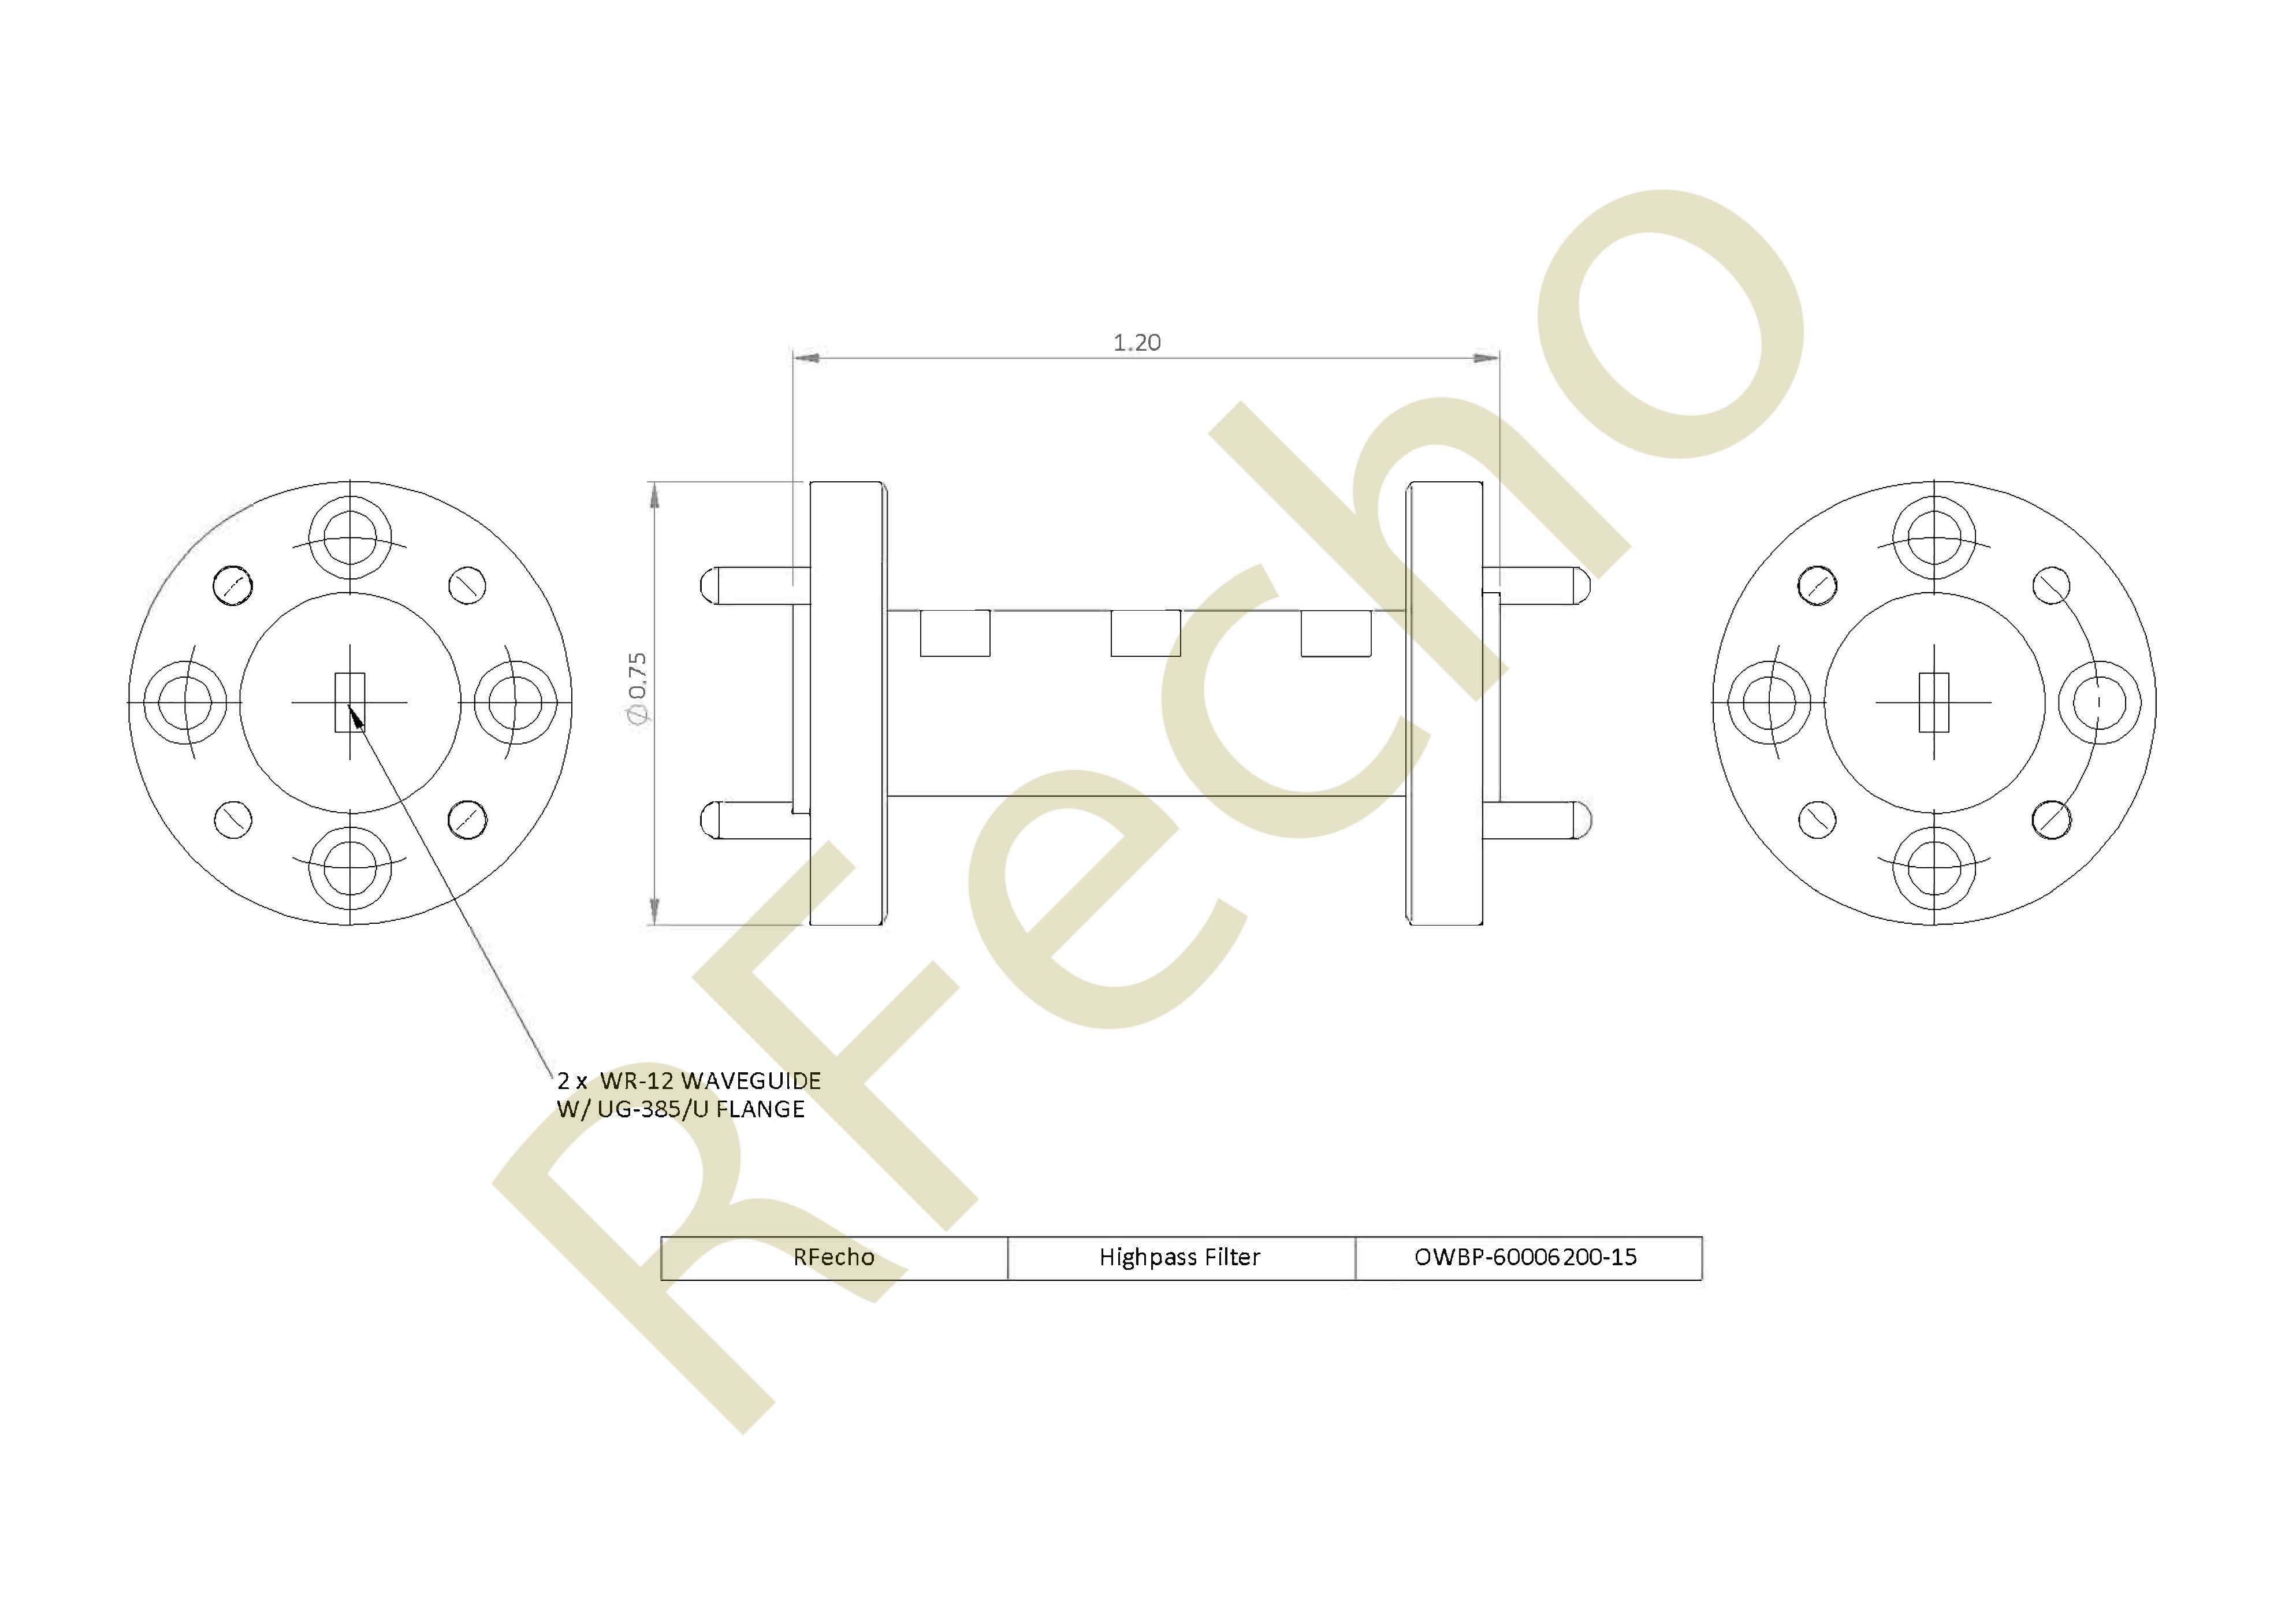 60GHz to 62GHz V Band Waveguide Bandpass Filter Rejection Frequency 64GHz to 80GHz Microwave Bandpass Filter